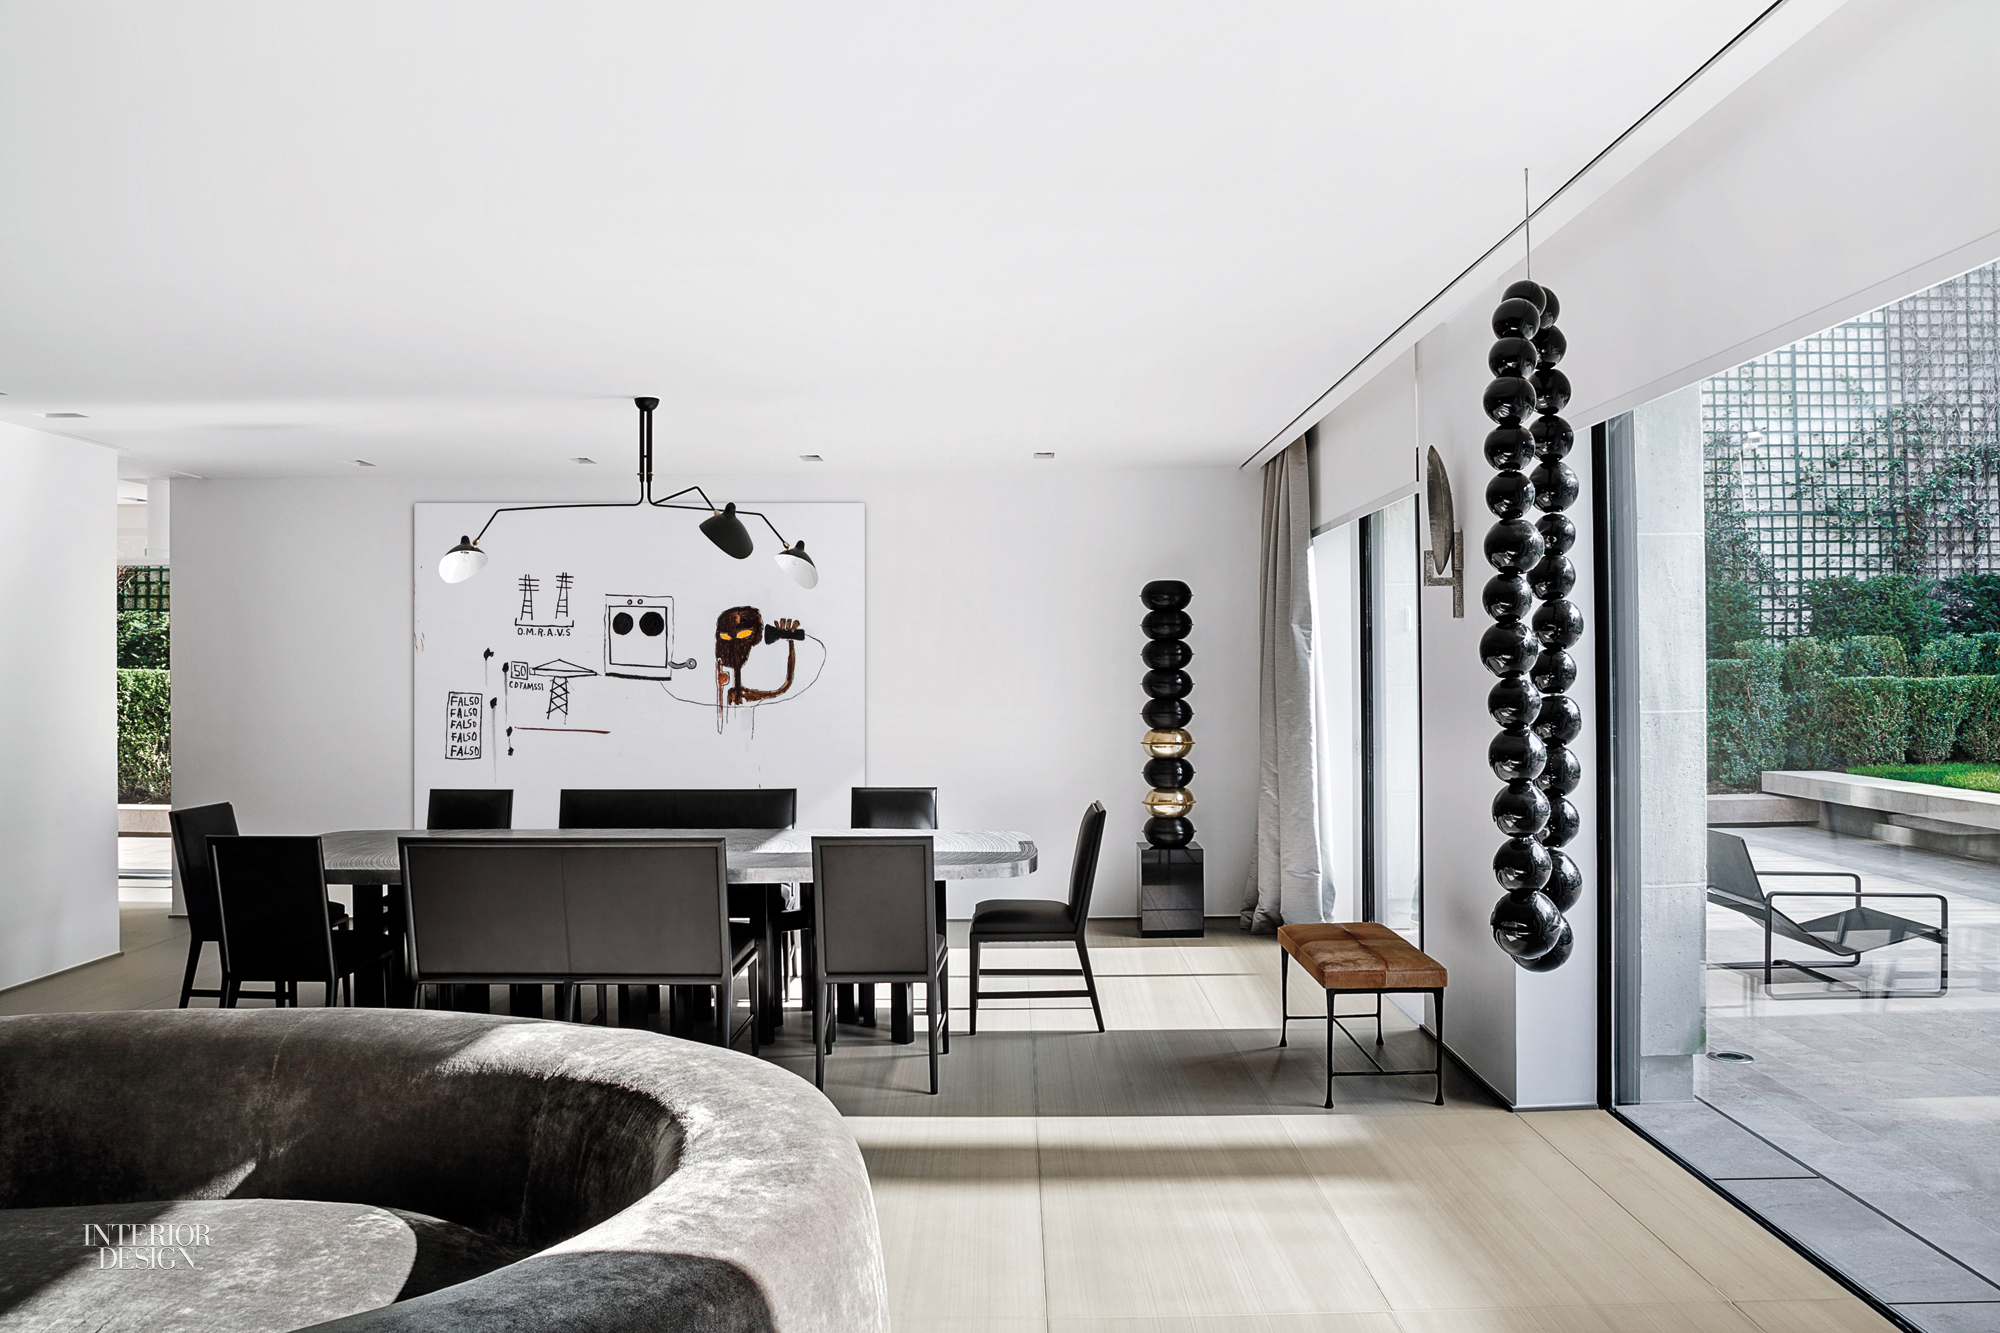 The Owners Of This 6,000 Square Foot Triplex Apartment In The Paris Suburb  Of Neuilly Sur Seine Have Long Admired The Sleek, Clean Lined Style Of  Olivier ...